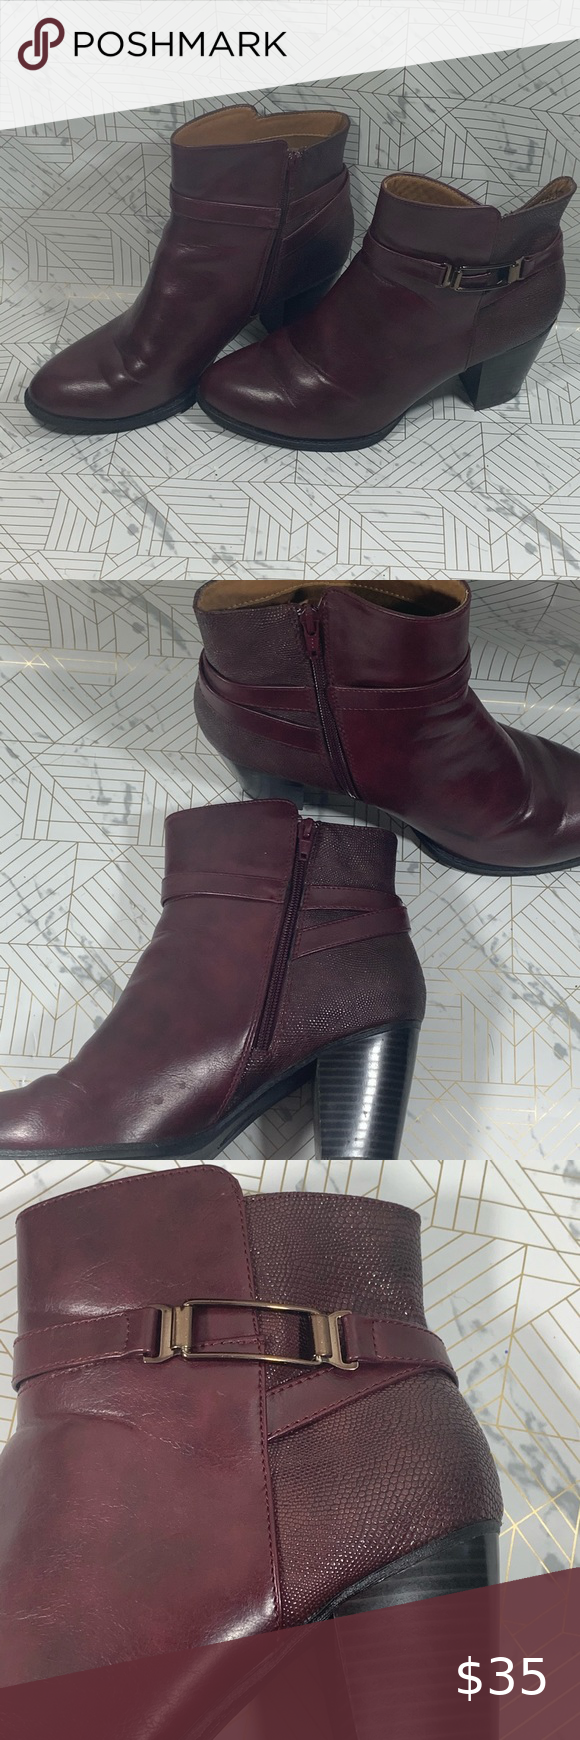 Burgundy ankle boots - Cloud Walkers